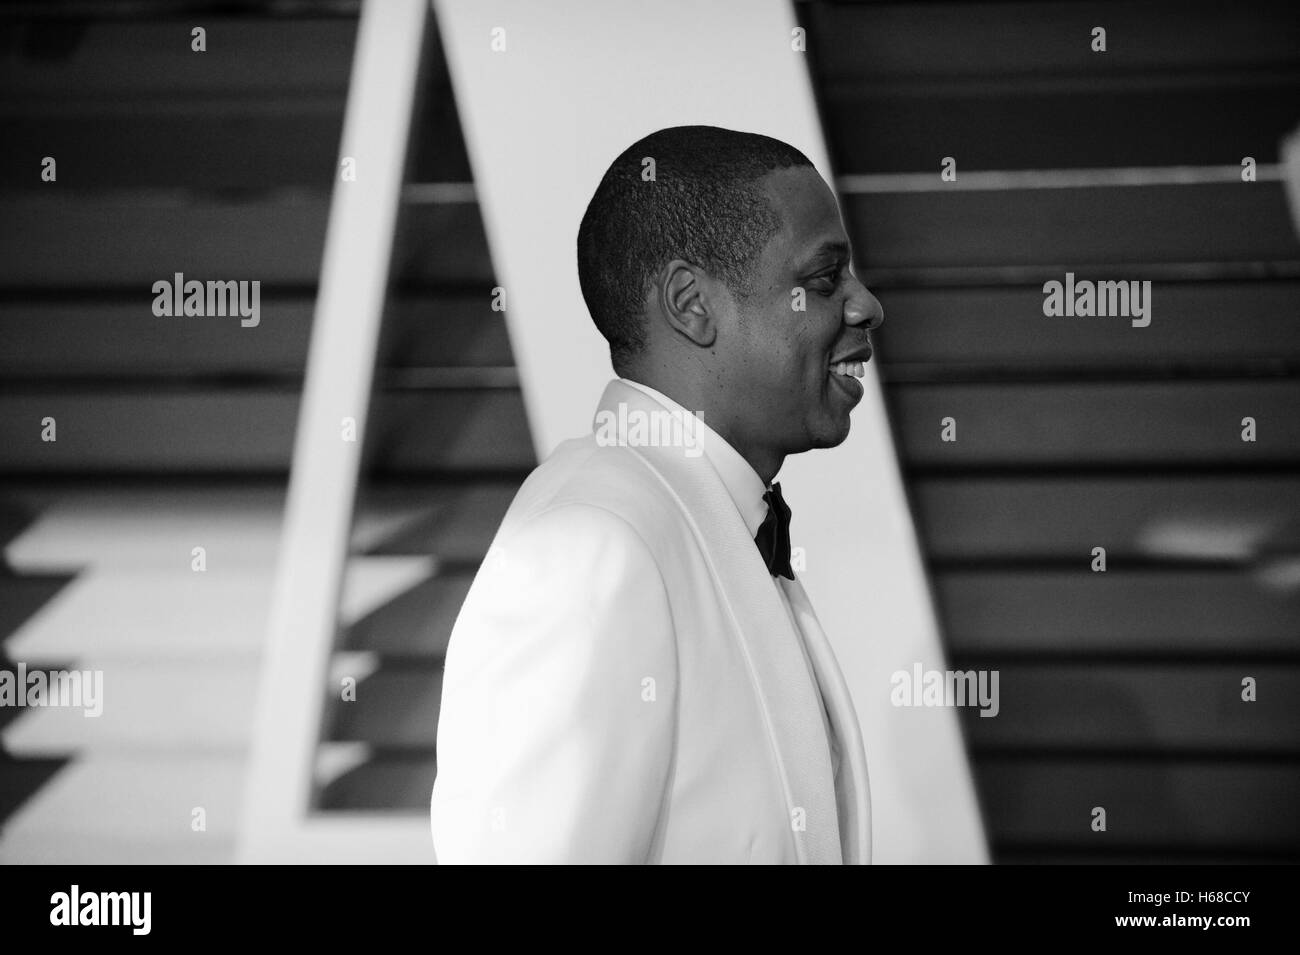 Rapper shawn carter aka jay z attends the 2015 vanity fair oscar party hosted by